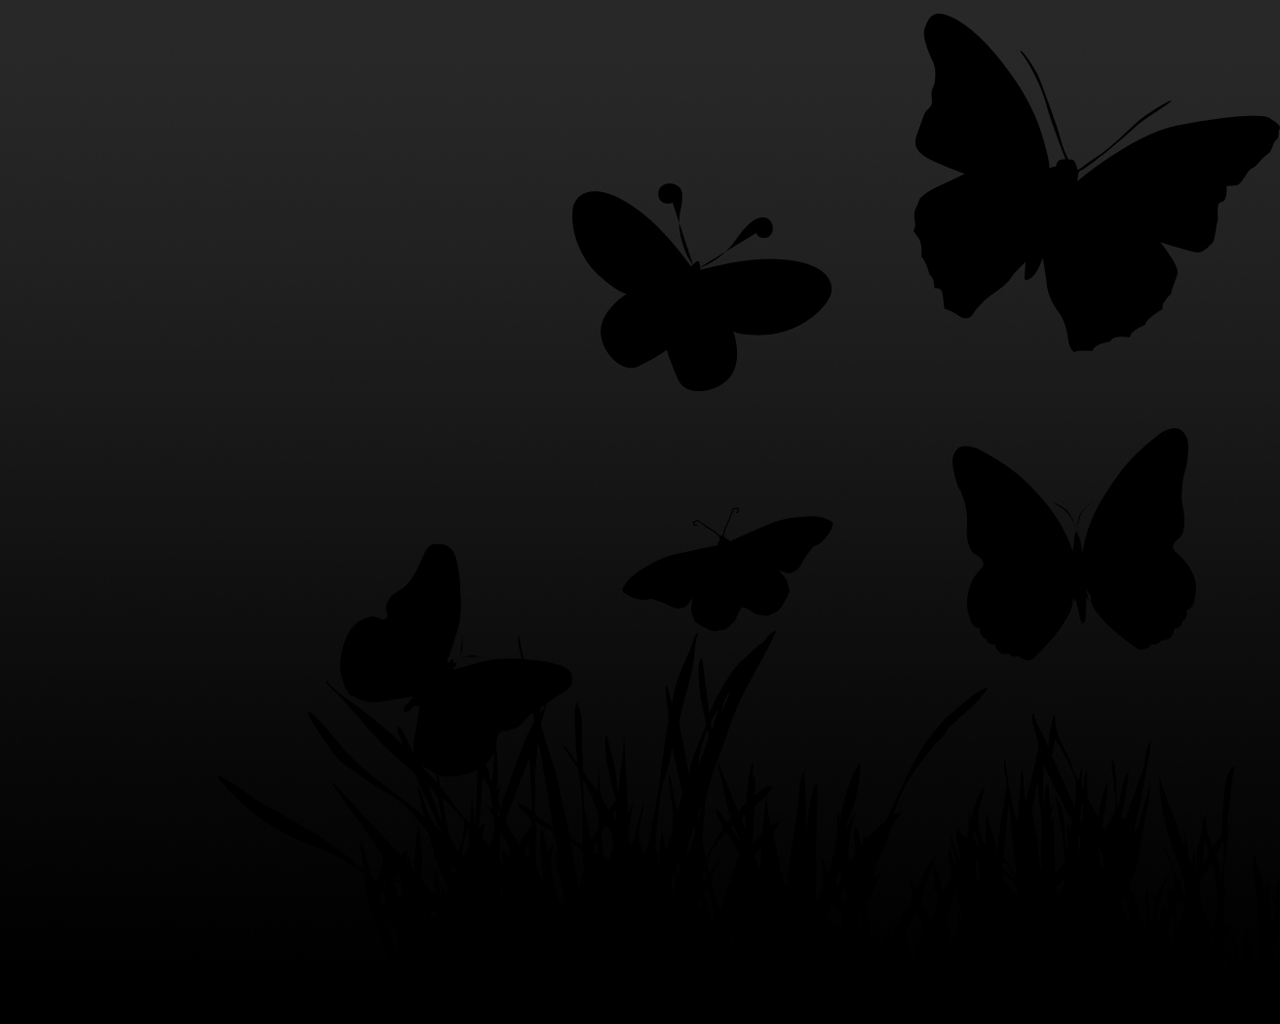 black wallpaper black wallpaper black wallpaper black wallpaper black 1280x1024